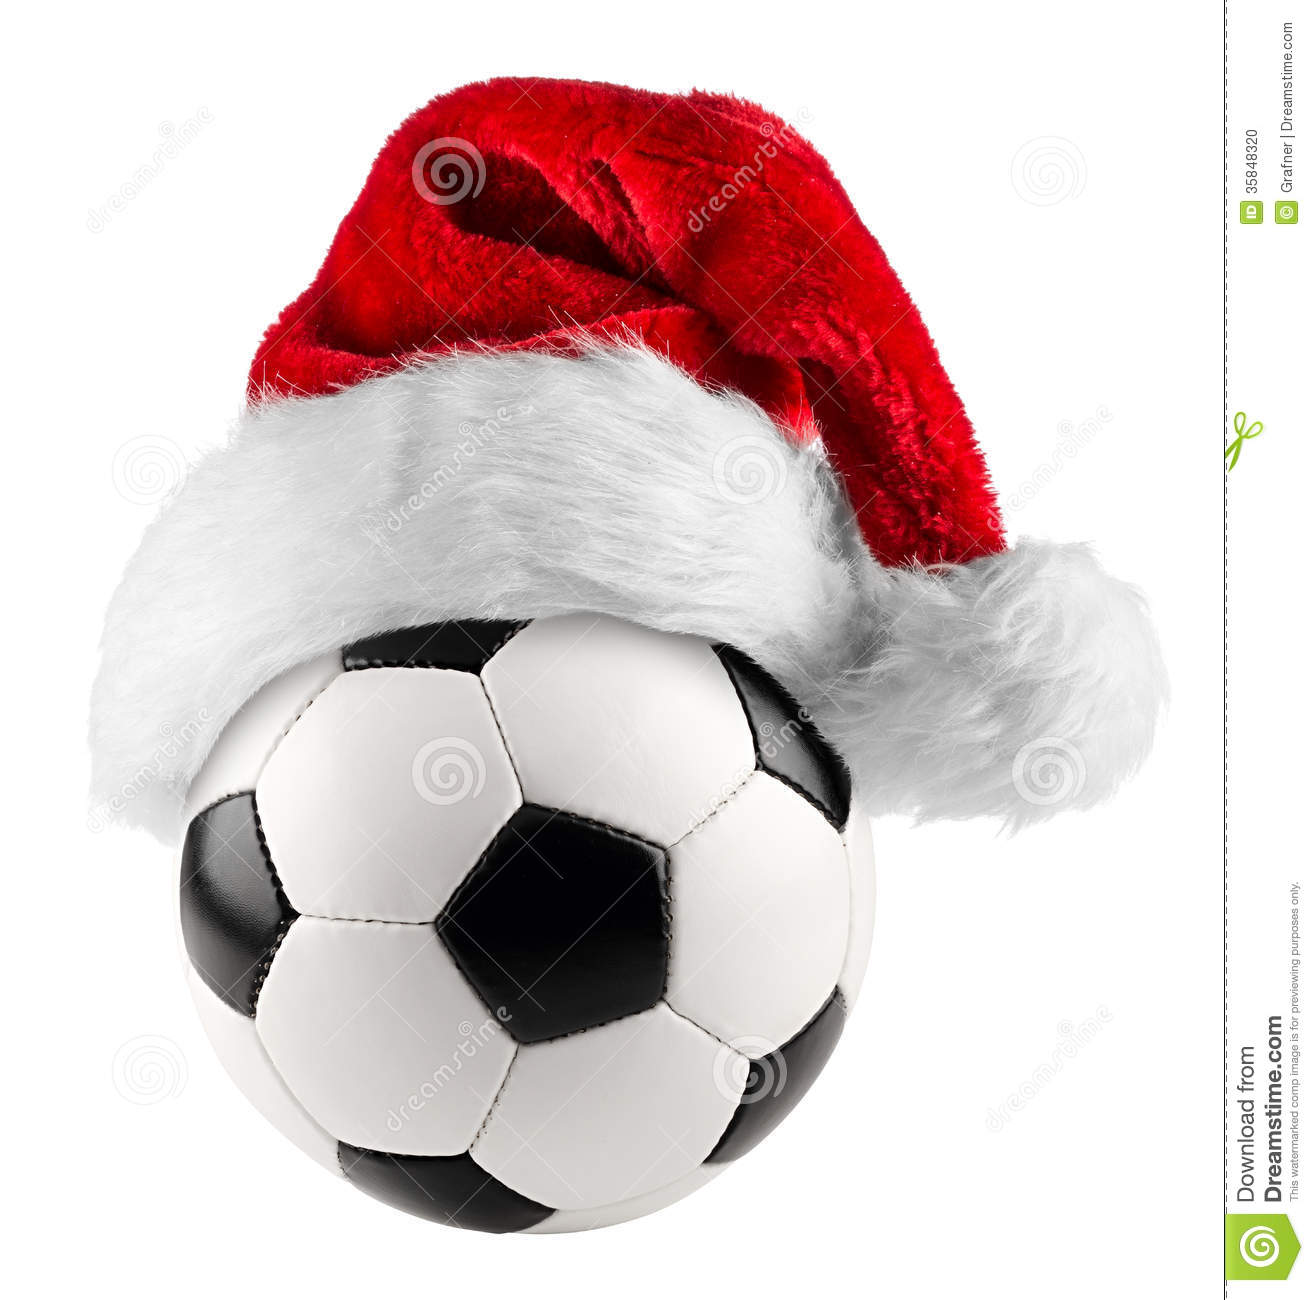 6f84caacb51 Soccer ball santa hat stock photo. Image of santa